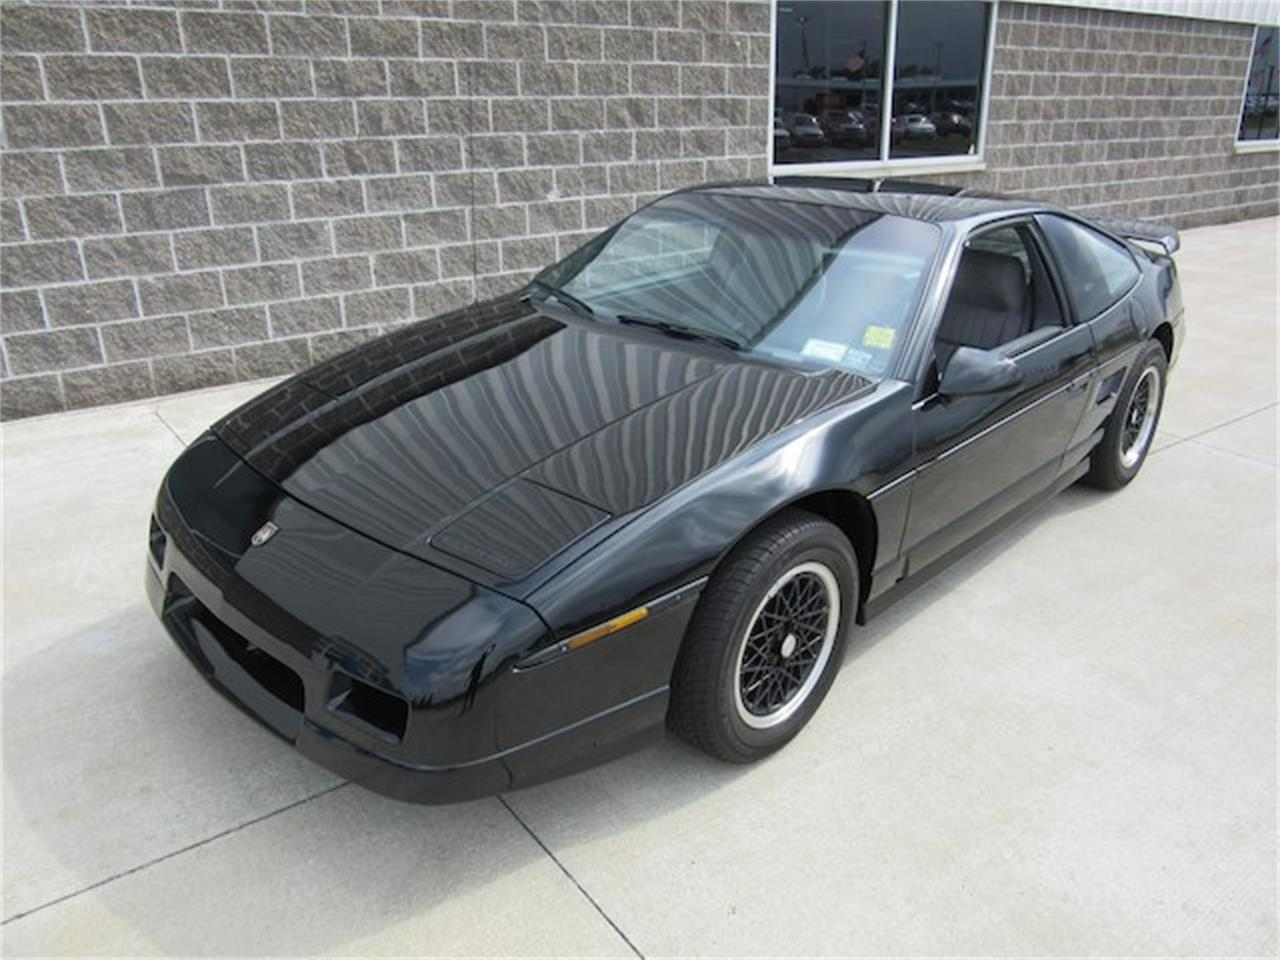 Large Picture of '88 Fiero located in Indiana - $15,900.00 - NVQQ